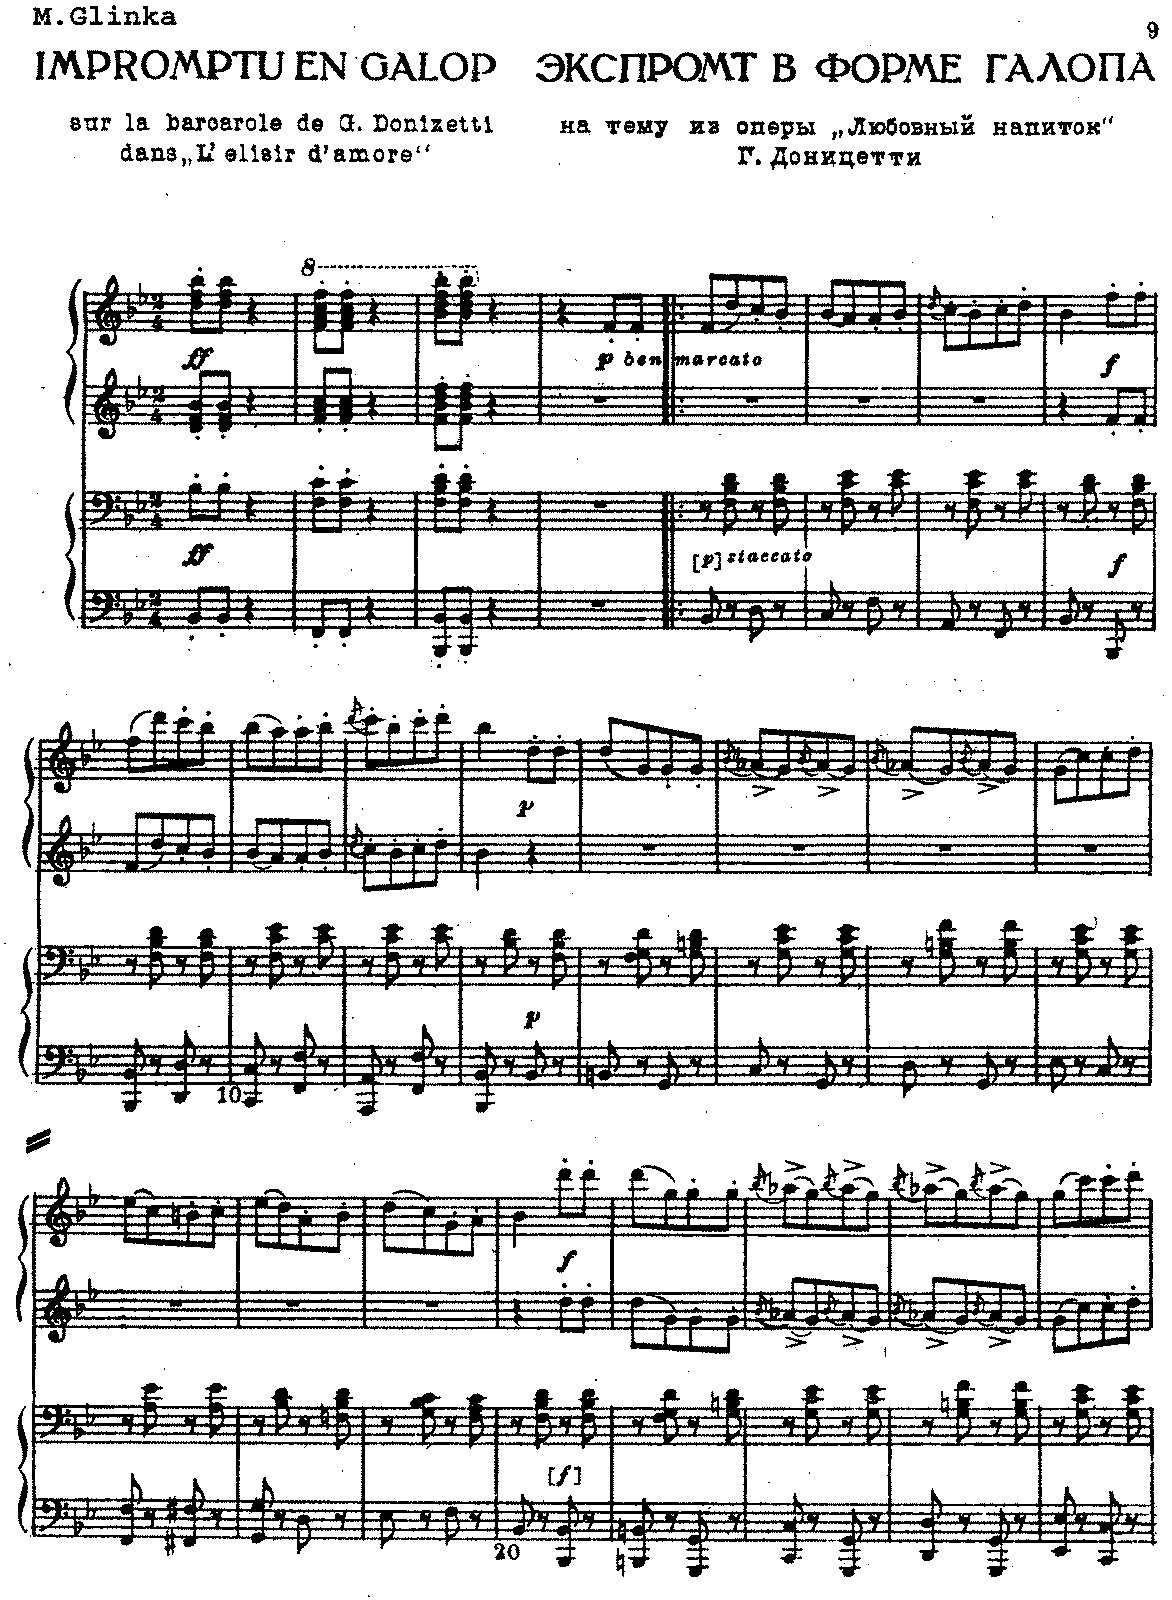 Glinka - Impromptu-Galop in B Major on a Theme from Donizetti's Opera Der Liebestrank (4H).pdf